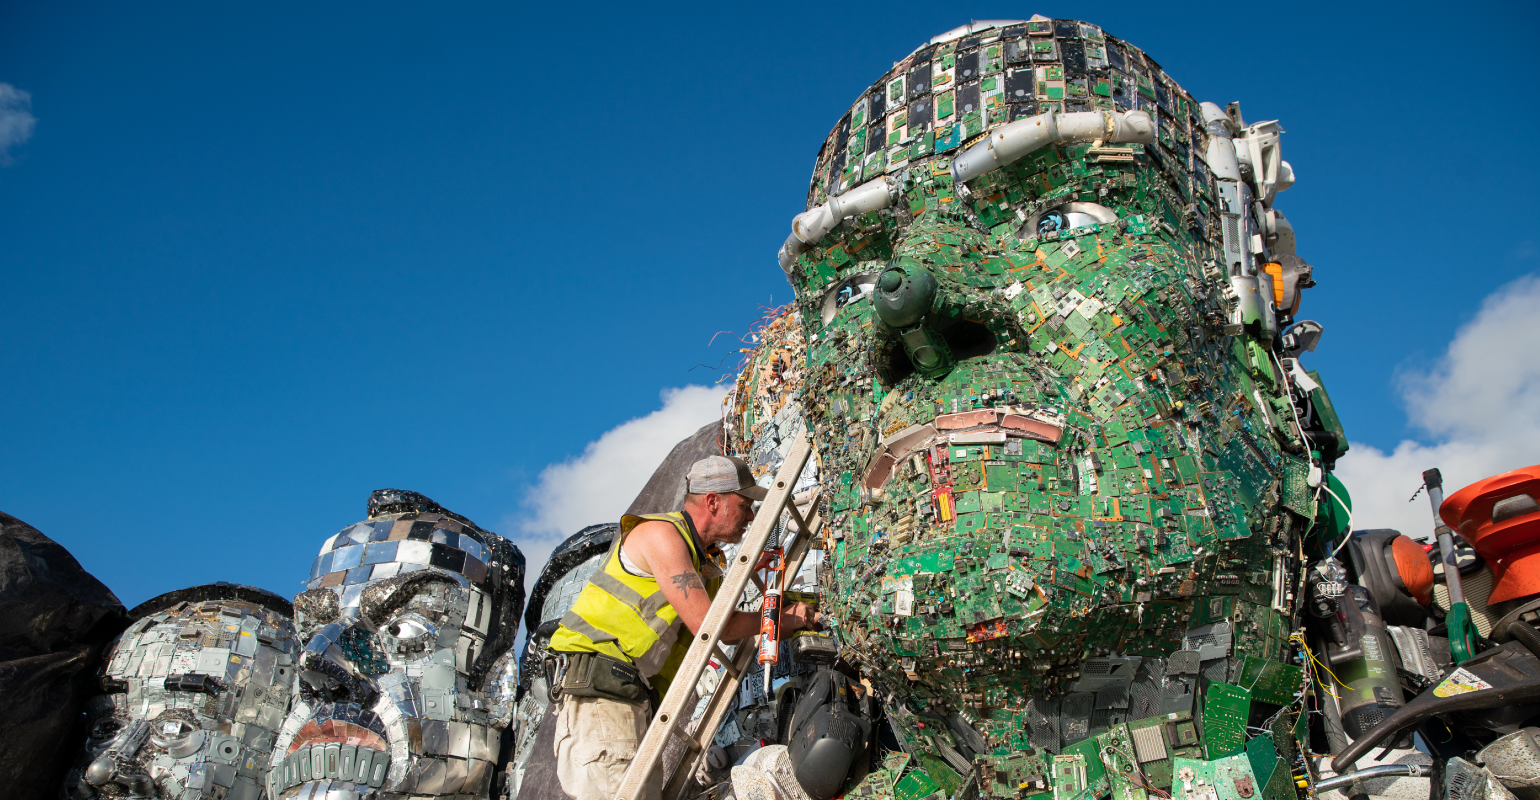 Mount Recyclemore Using e-Waste is Built Ahead of Summit | Waste360